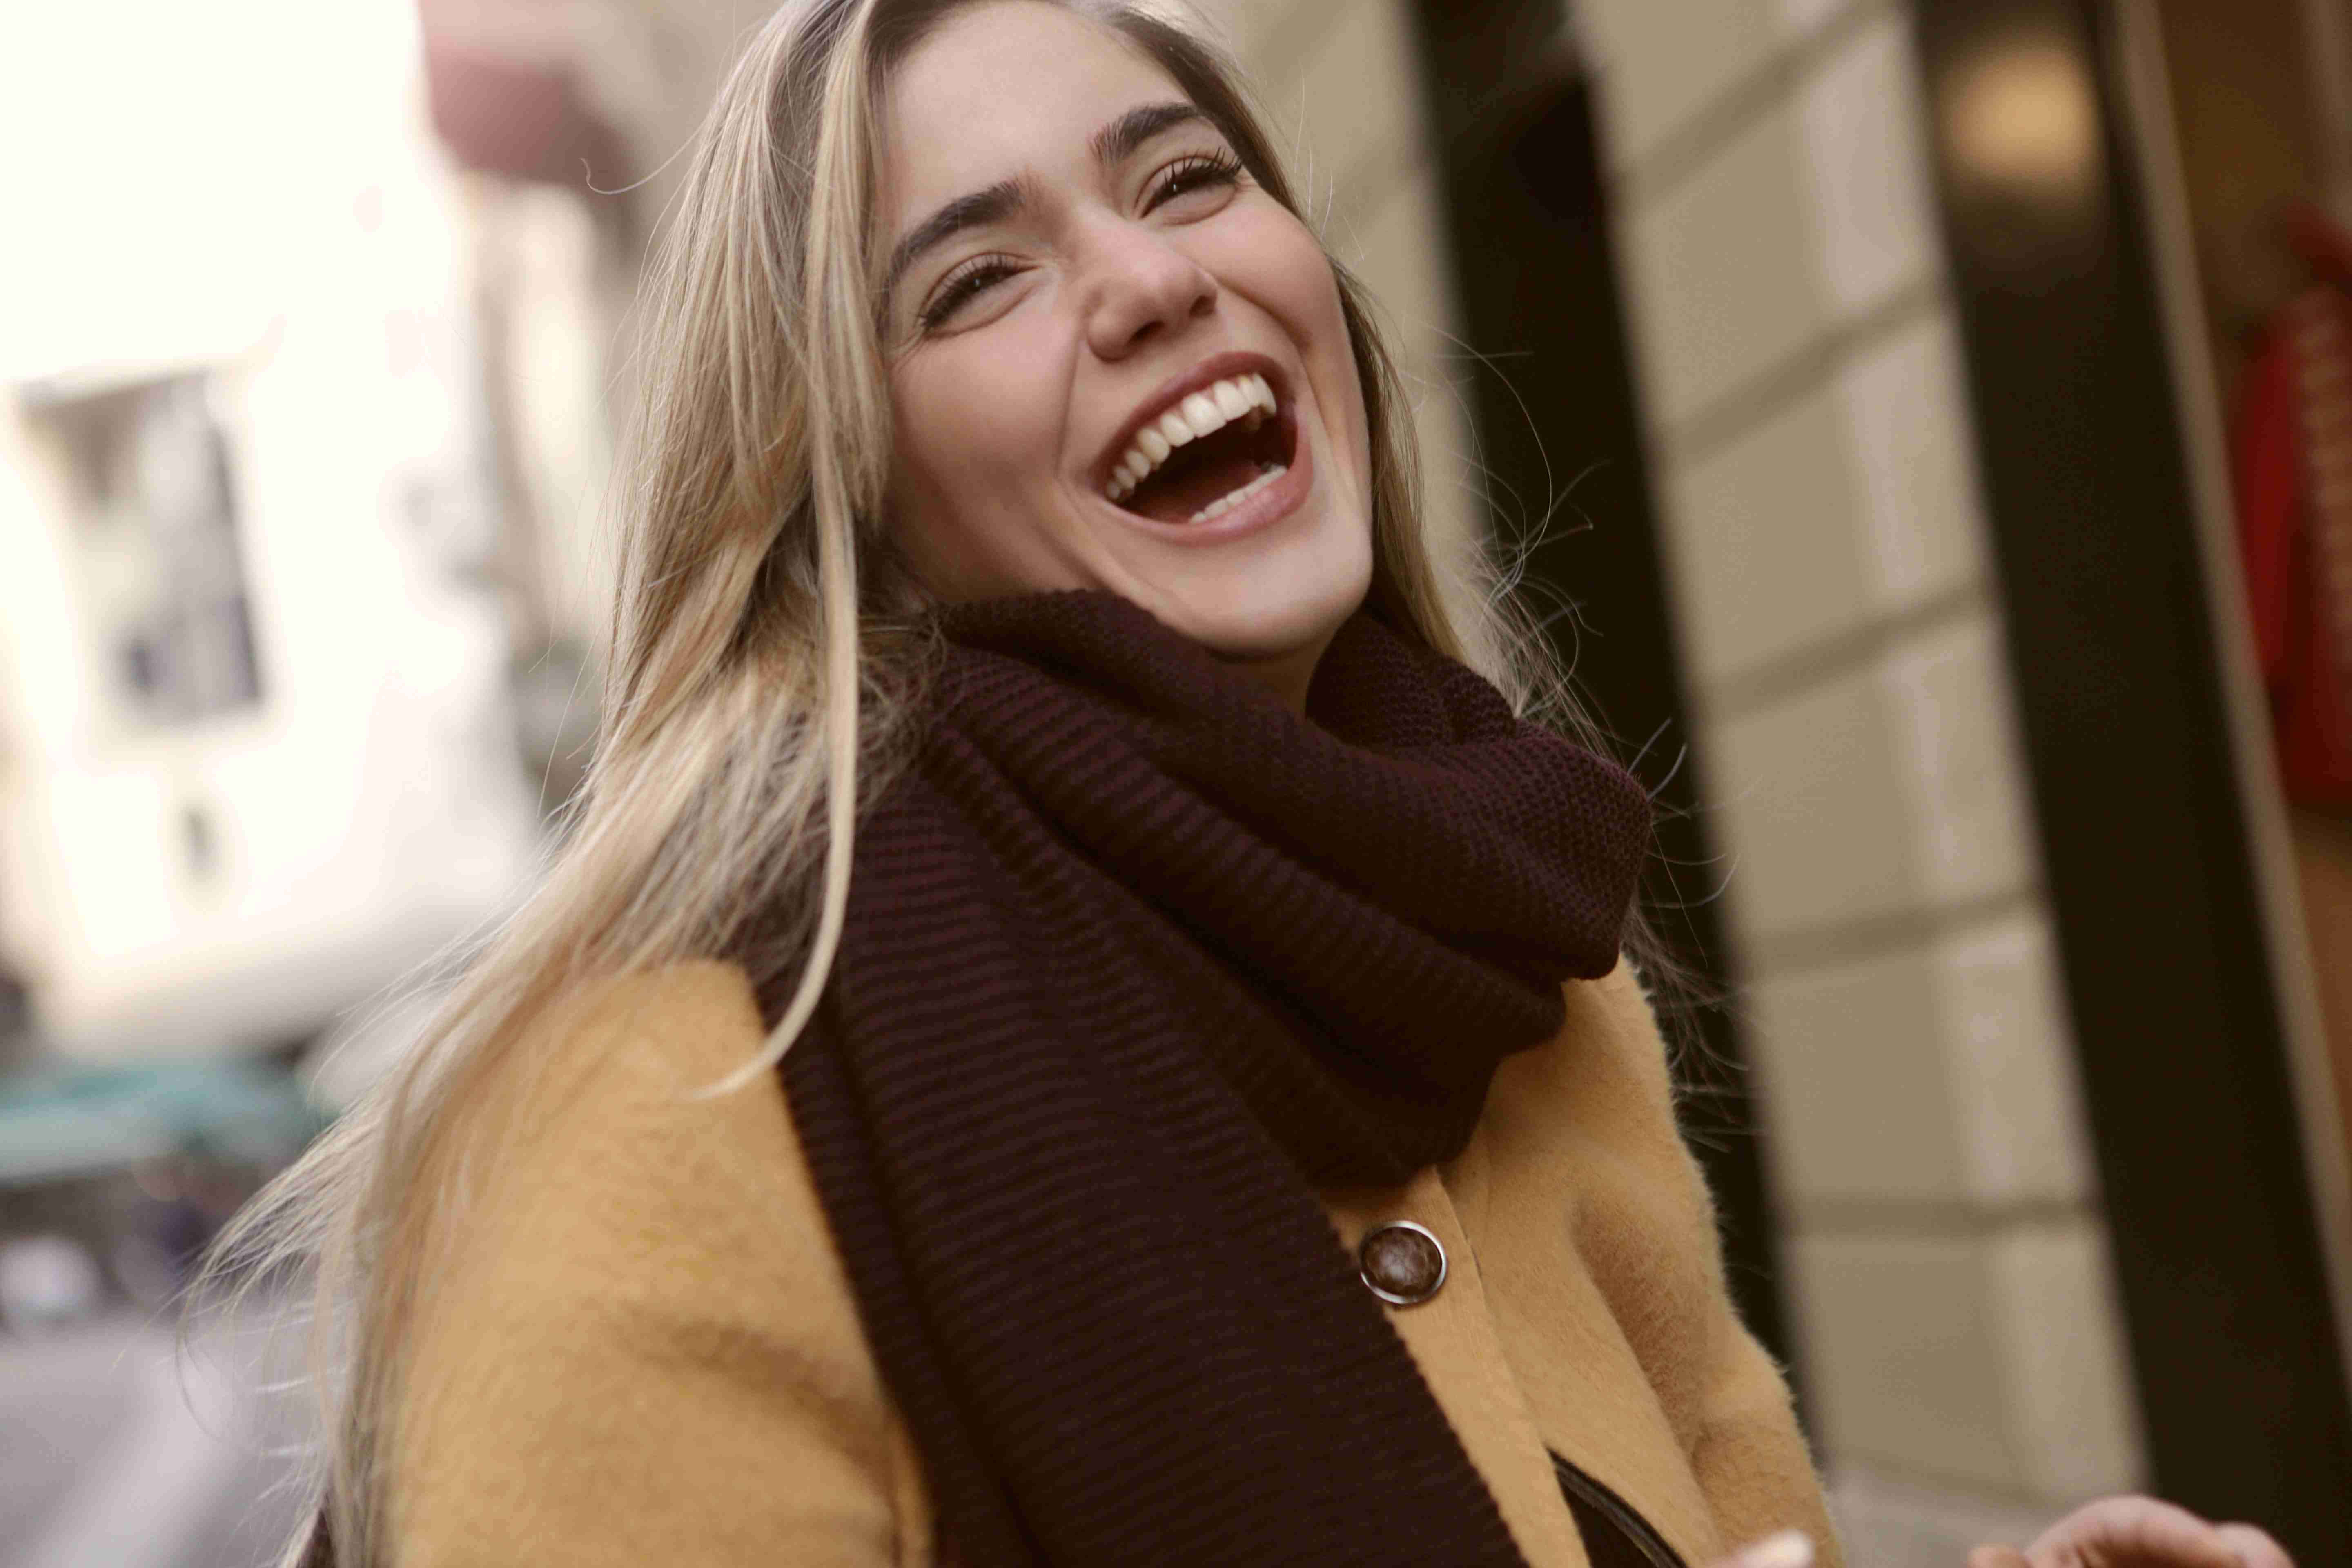 A young beautiful girl laughing